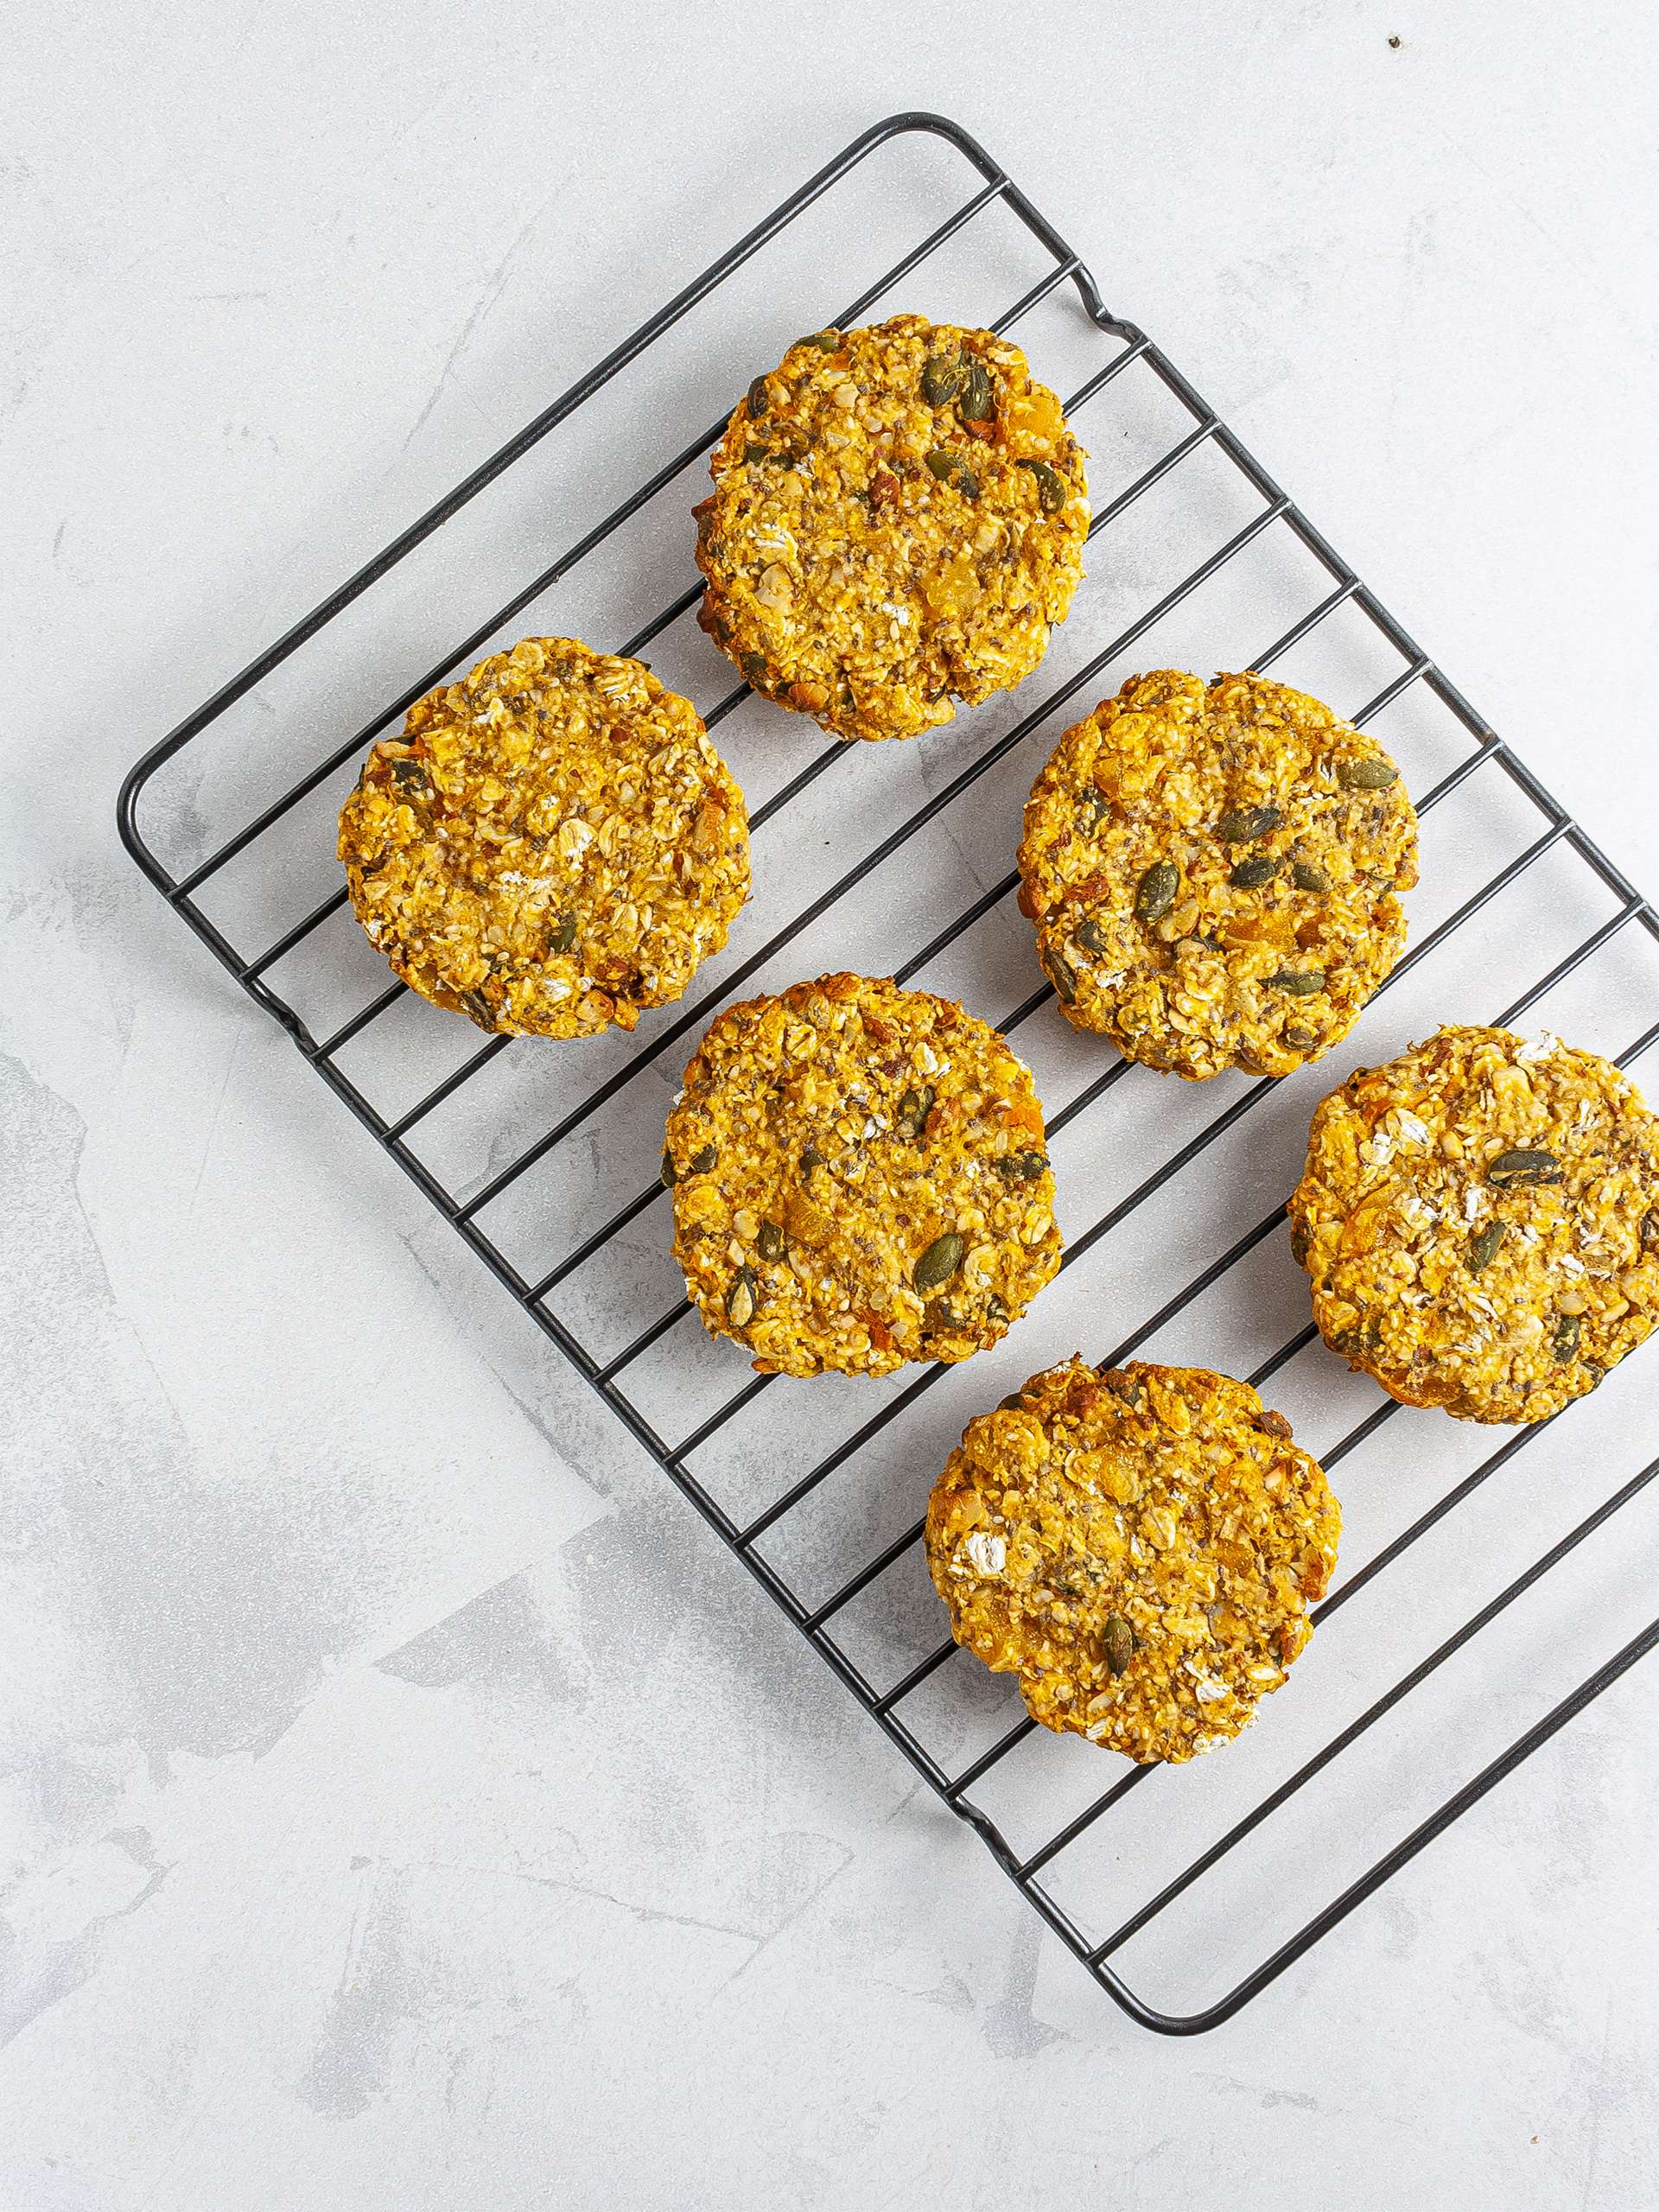 Baked sweet potato cookies on a cooling rack